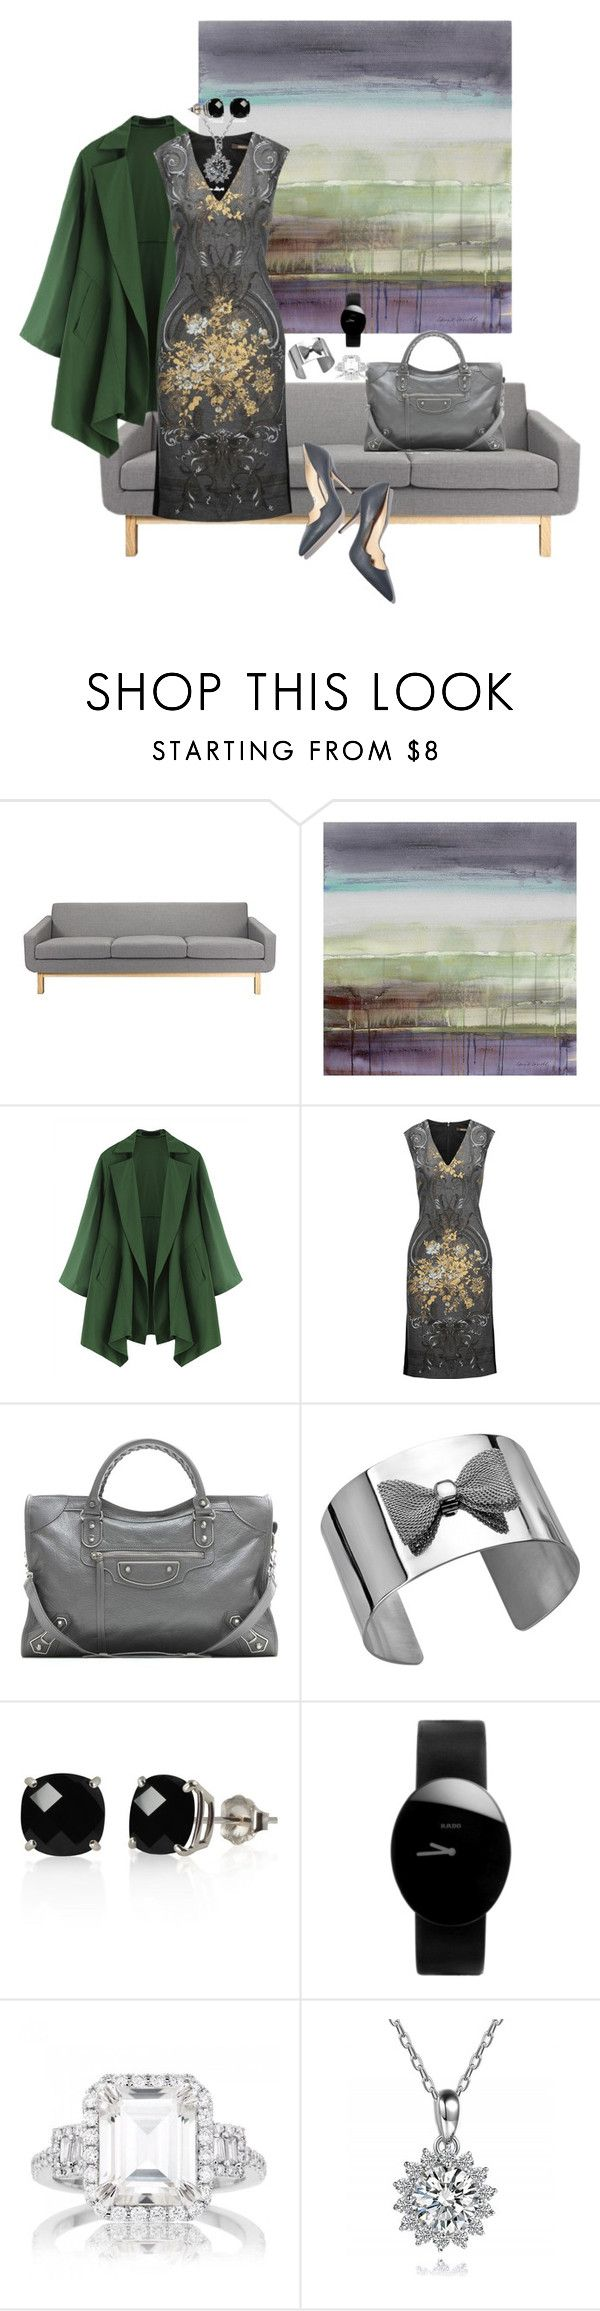 Gray Day by teresarussell49 on Polyvore featuring Roberto Cavalli, Balenciaga, Rado, Belk & Co. and Paul Andrew